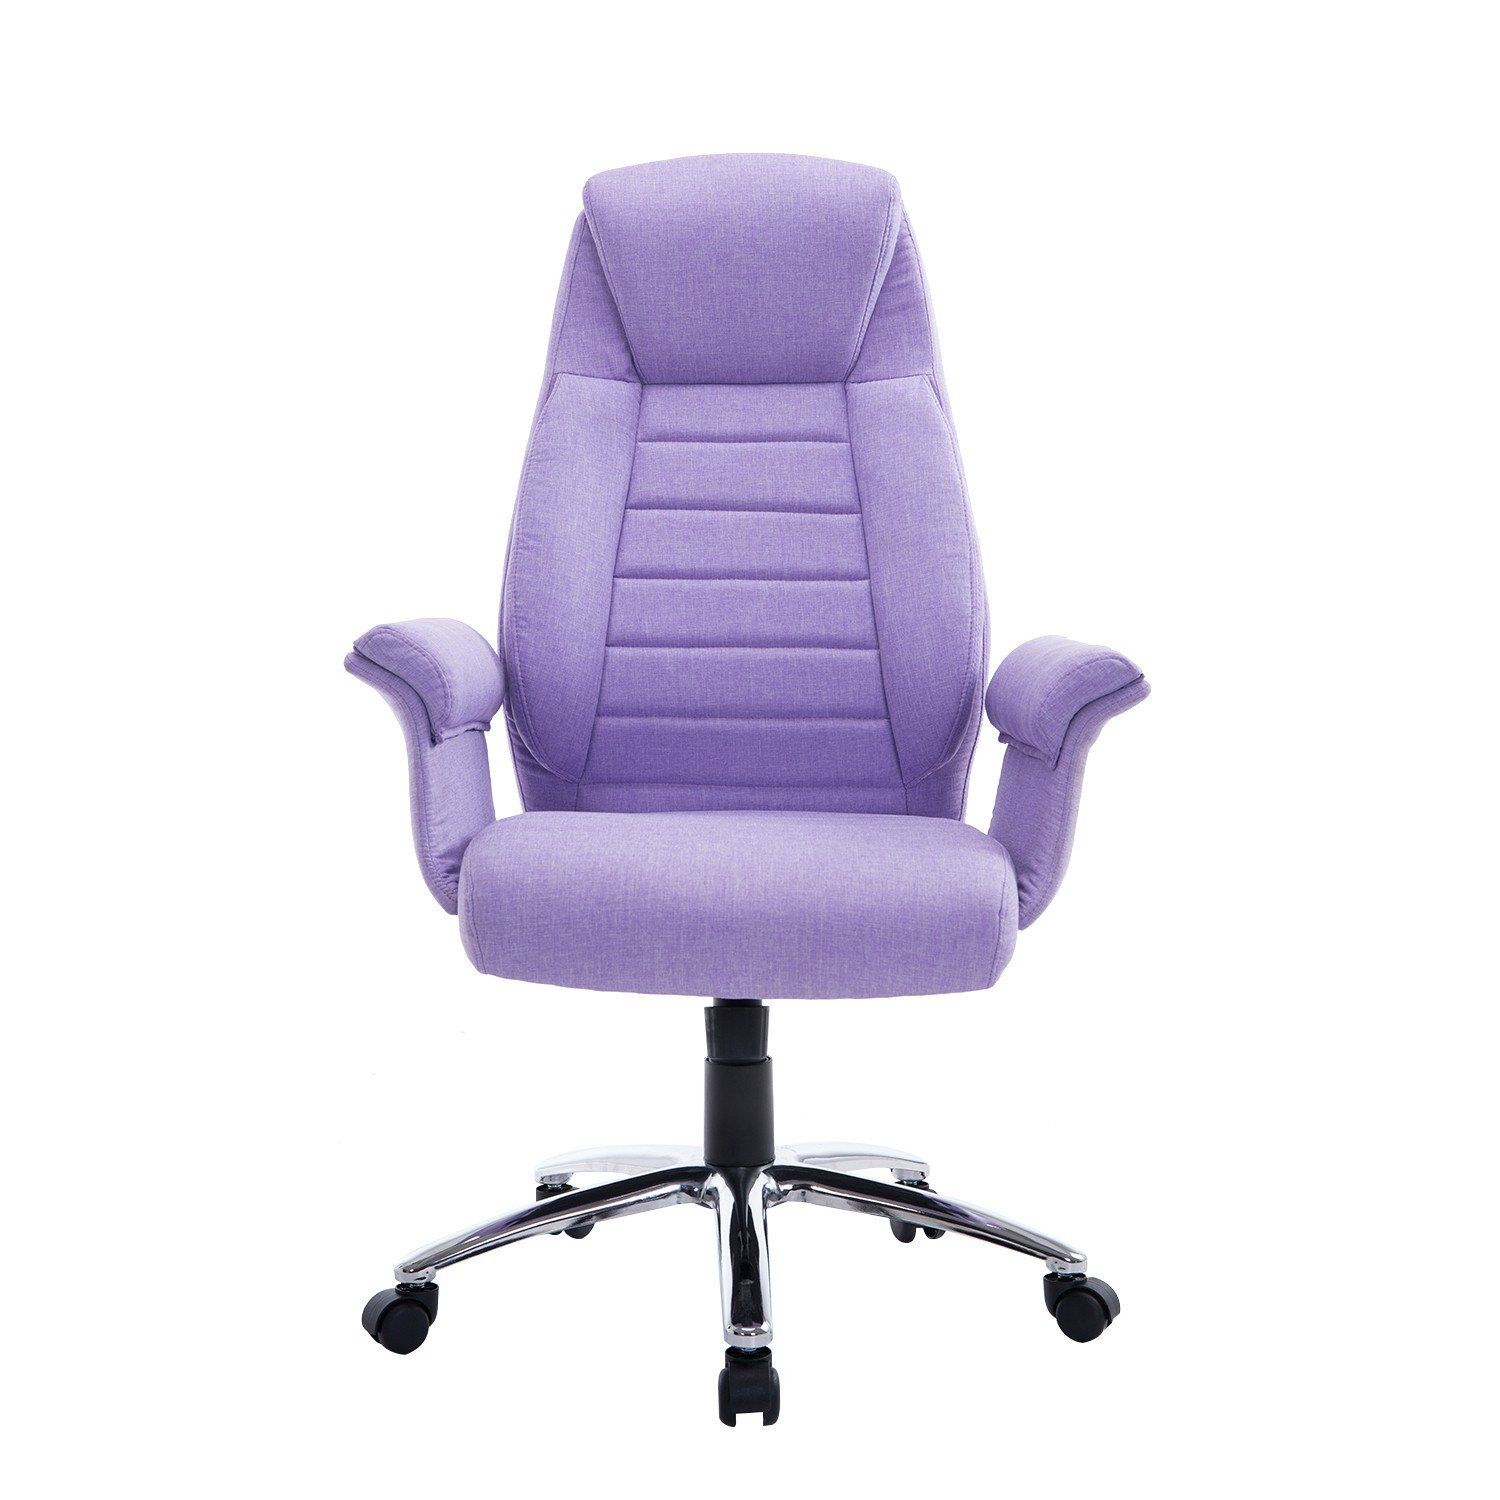 Rolling Purple Office Chair Aosom.ca (With images